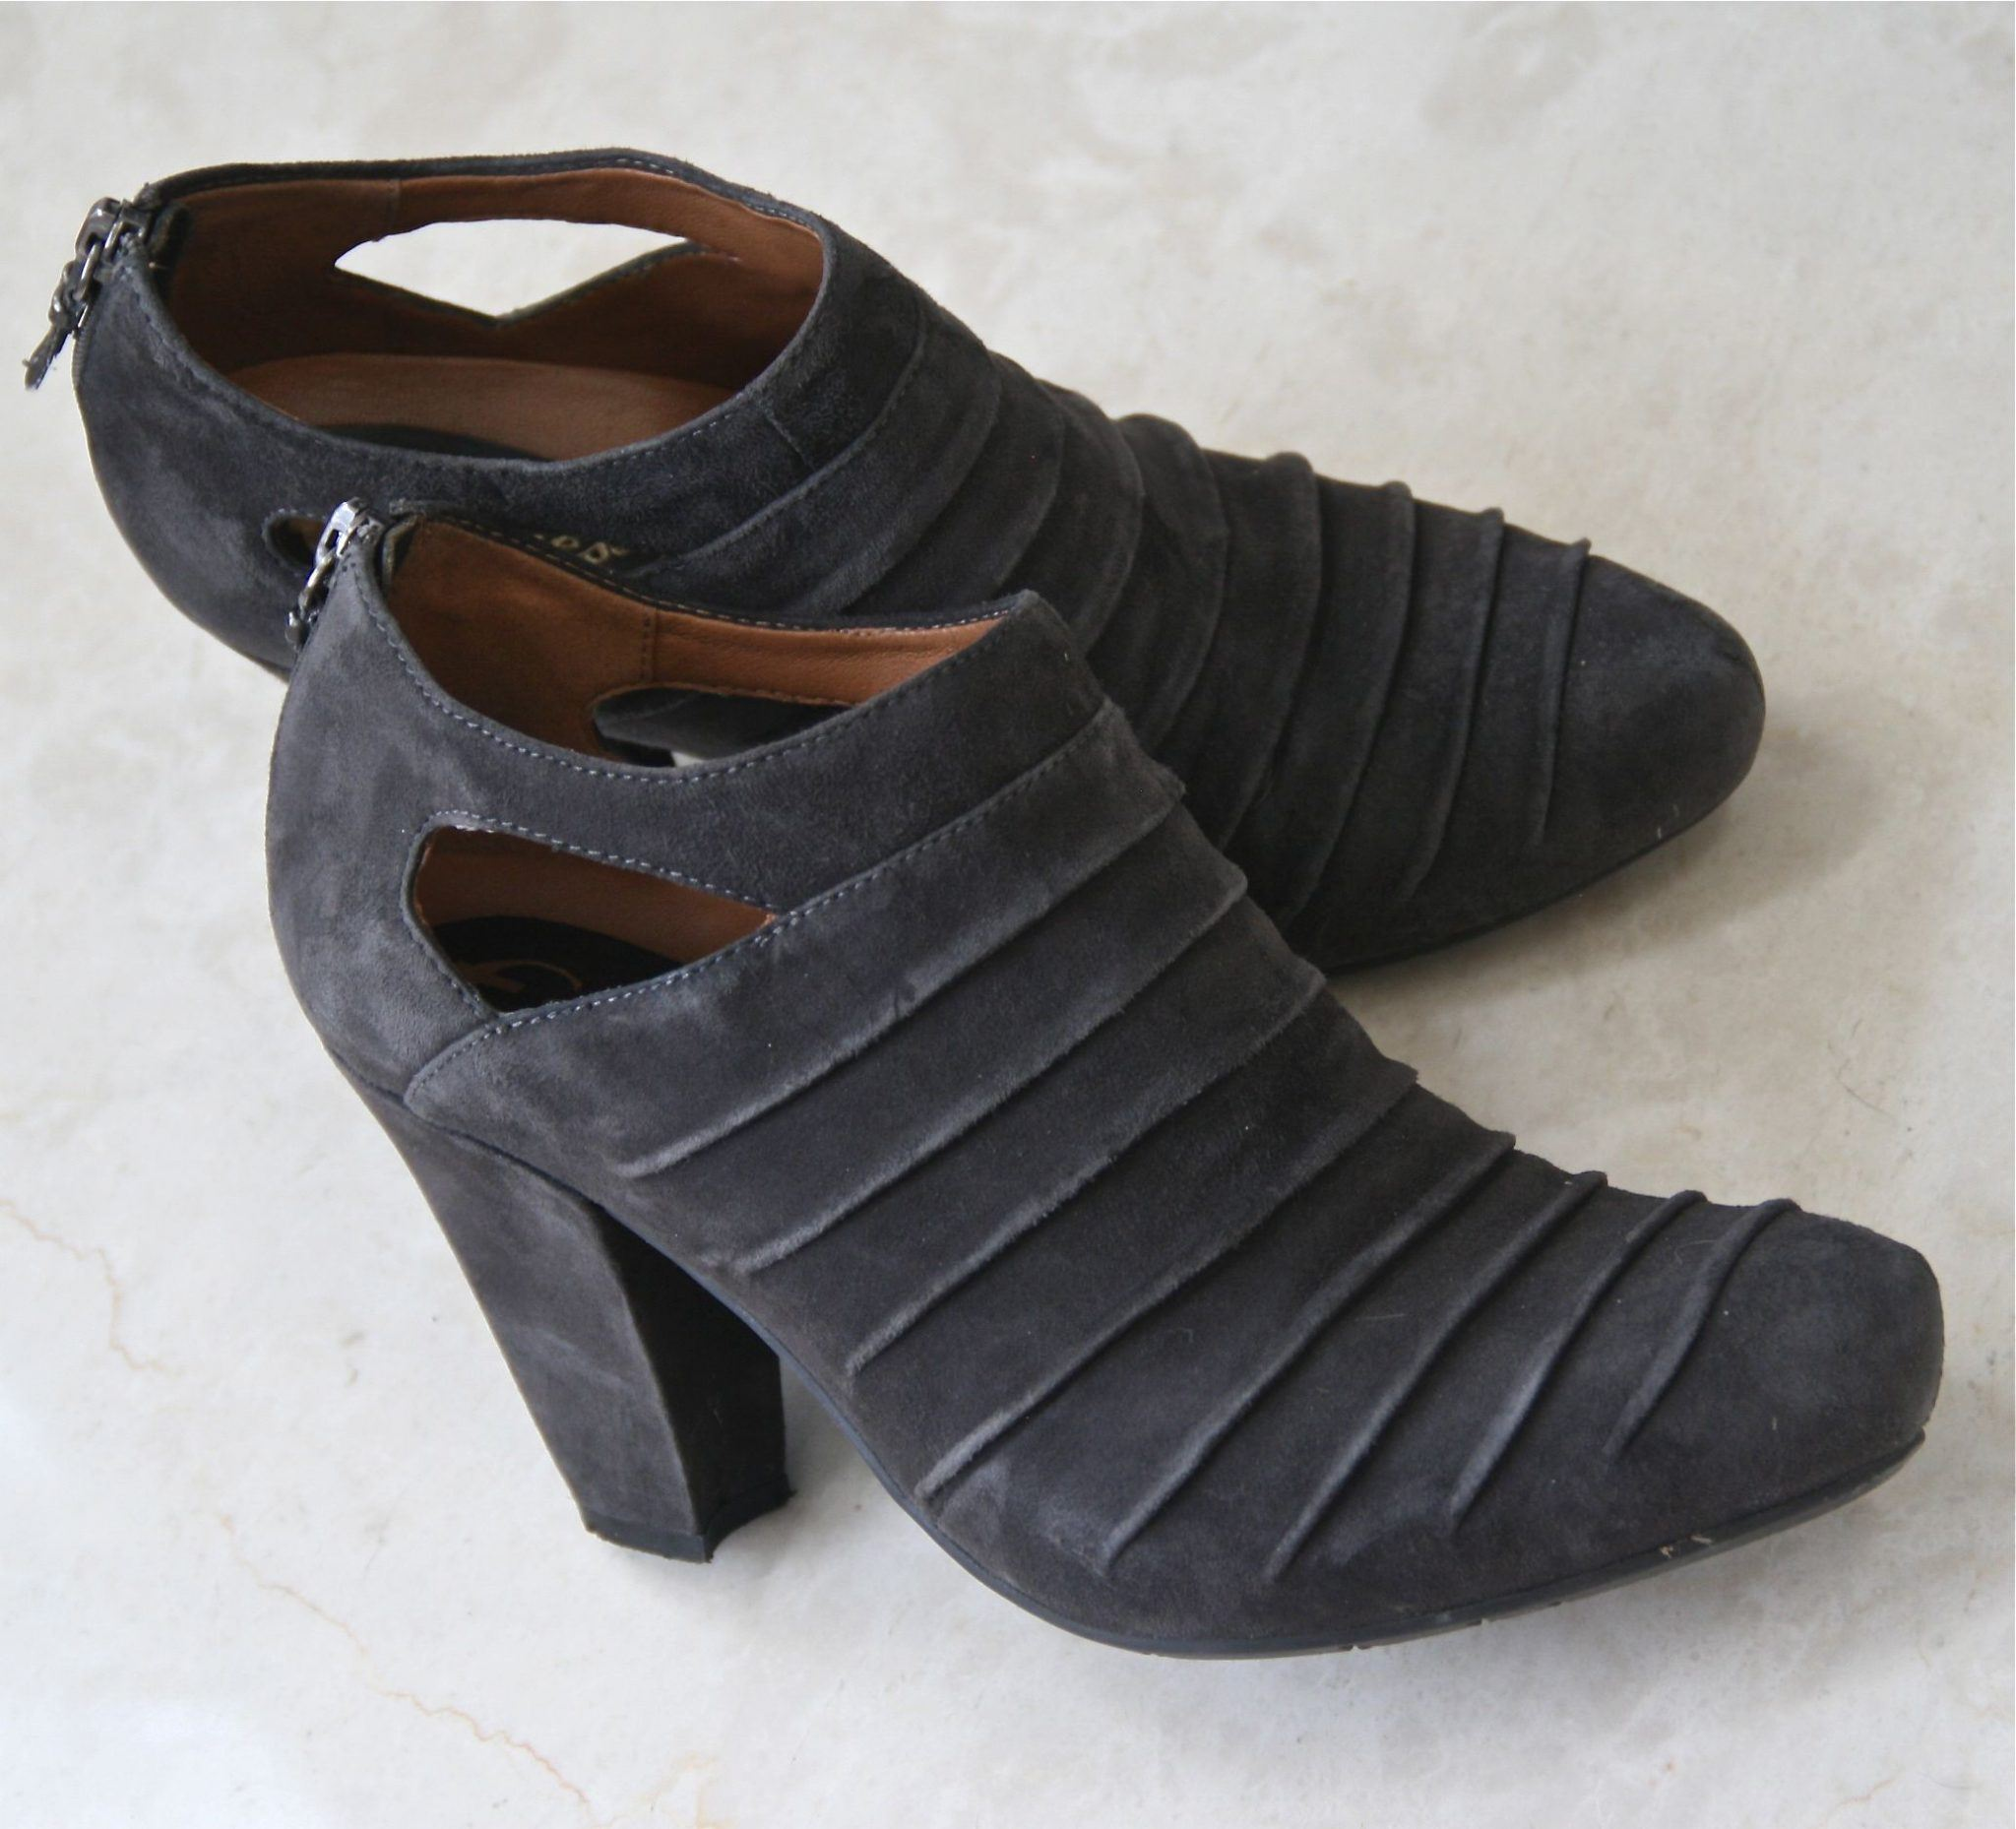 Earthies Shoes for Women on Sale